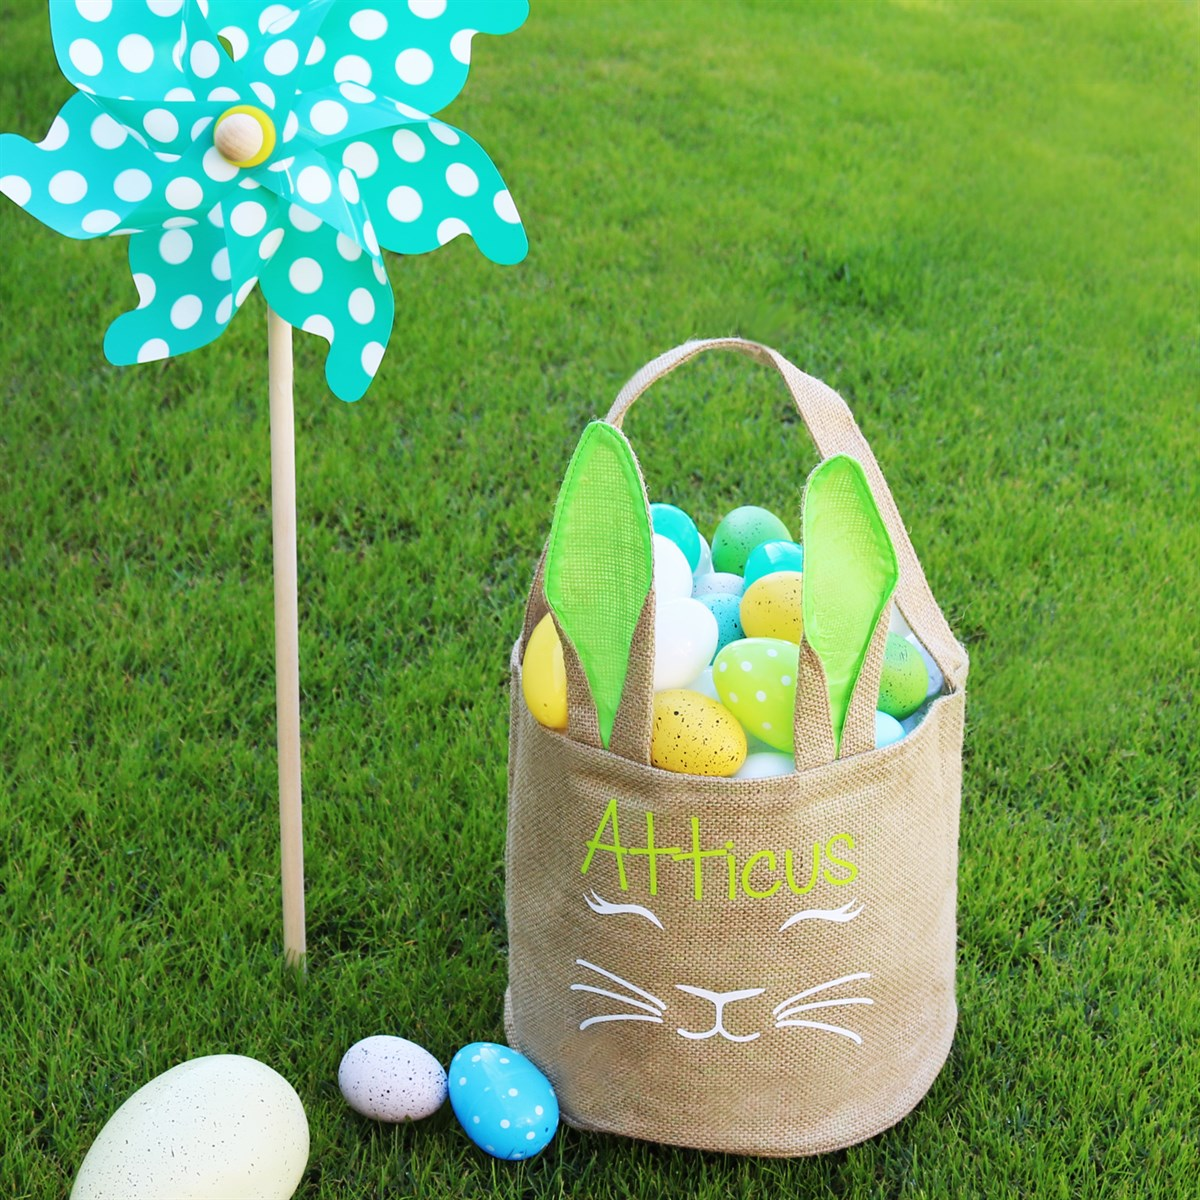 Personalized Bunny Ears Easter Basket